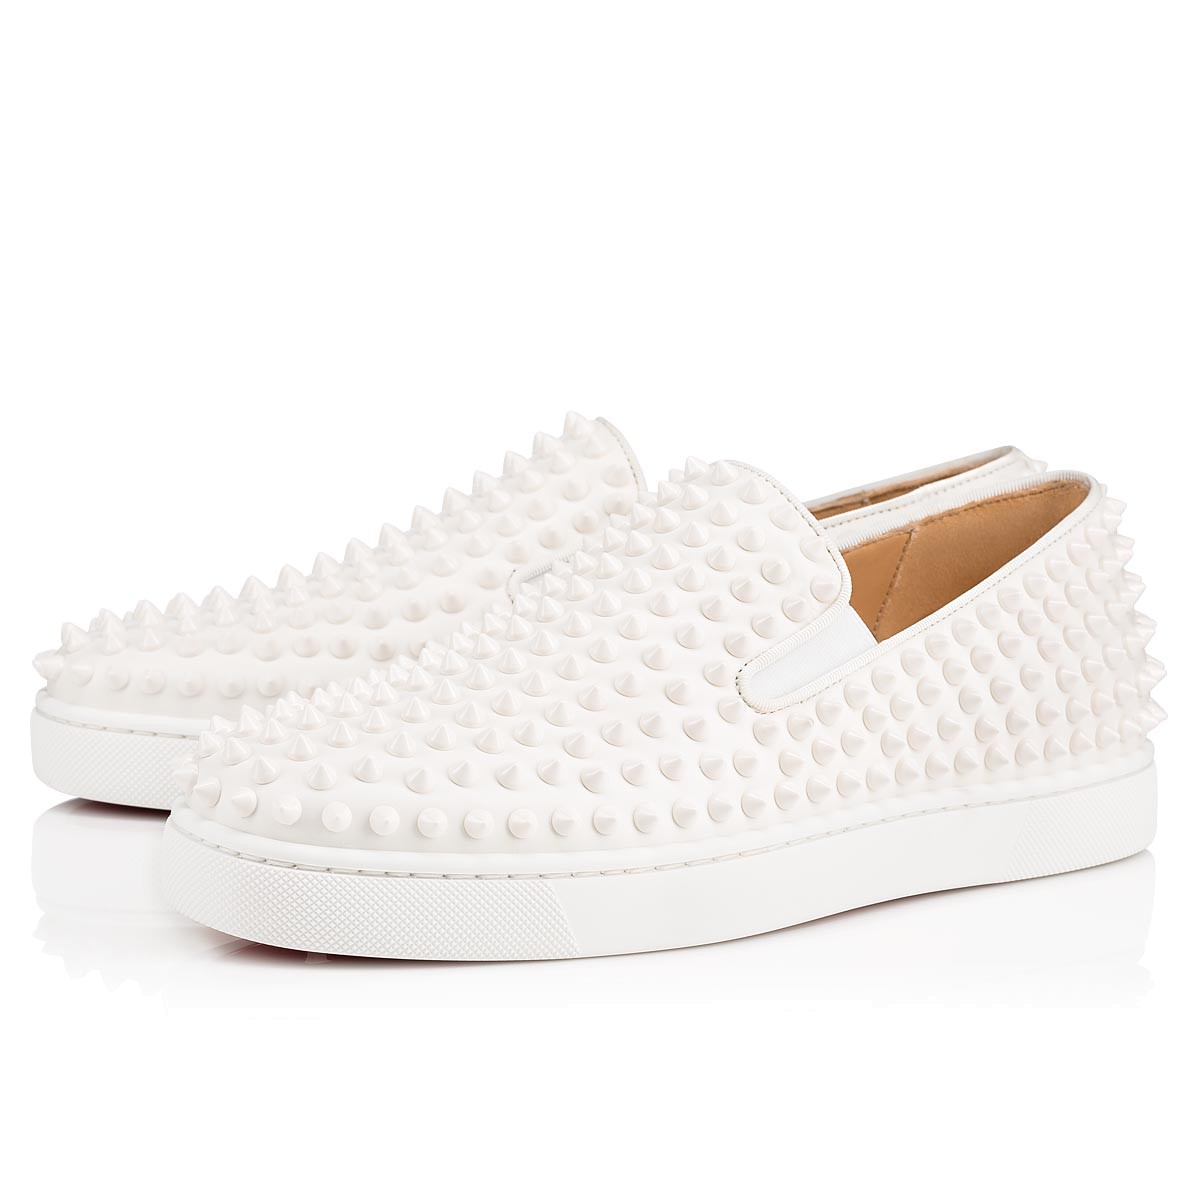 f17af92fd0a Roller-Boat White/White Leather - Men Shoes - Christian Louboutin